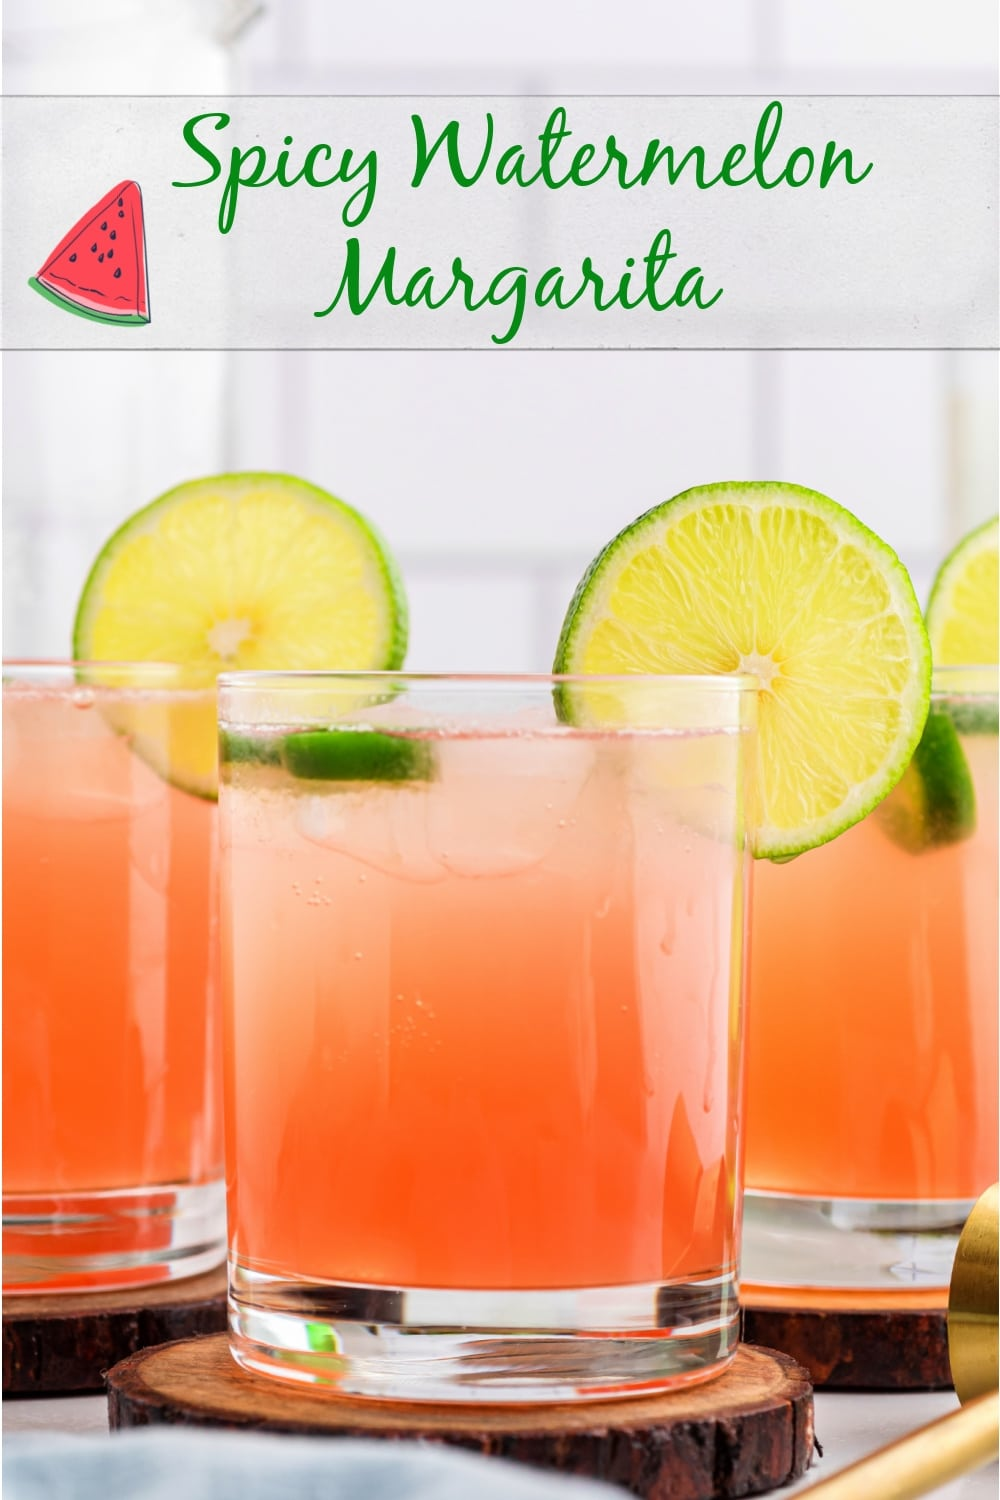 Refreshing with a kick, this Spicy Watermelon Margarita is a zippy take on the classic and the best simple, summer cocktail. via @cmpollak1